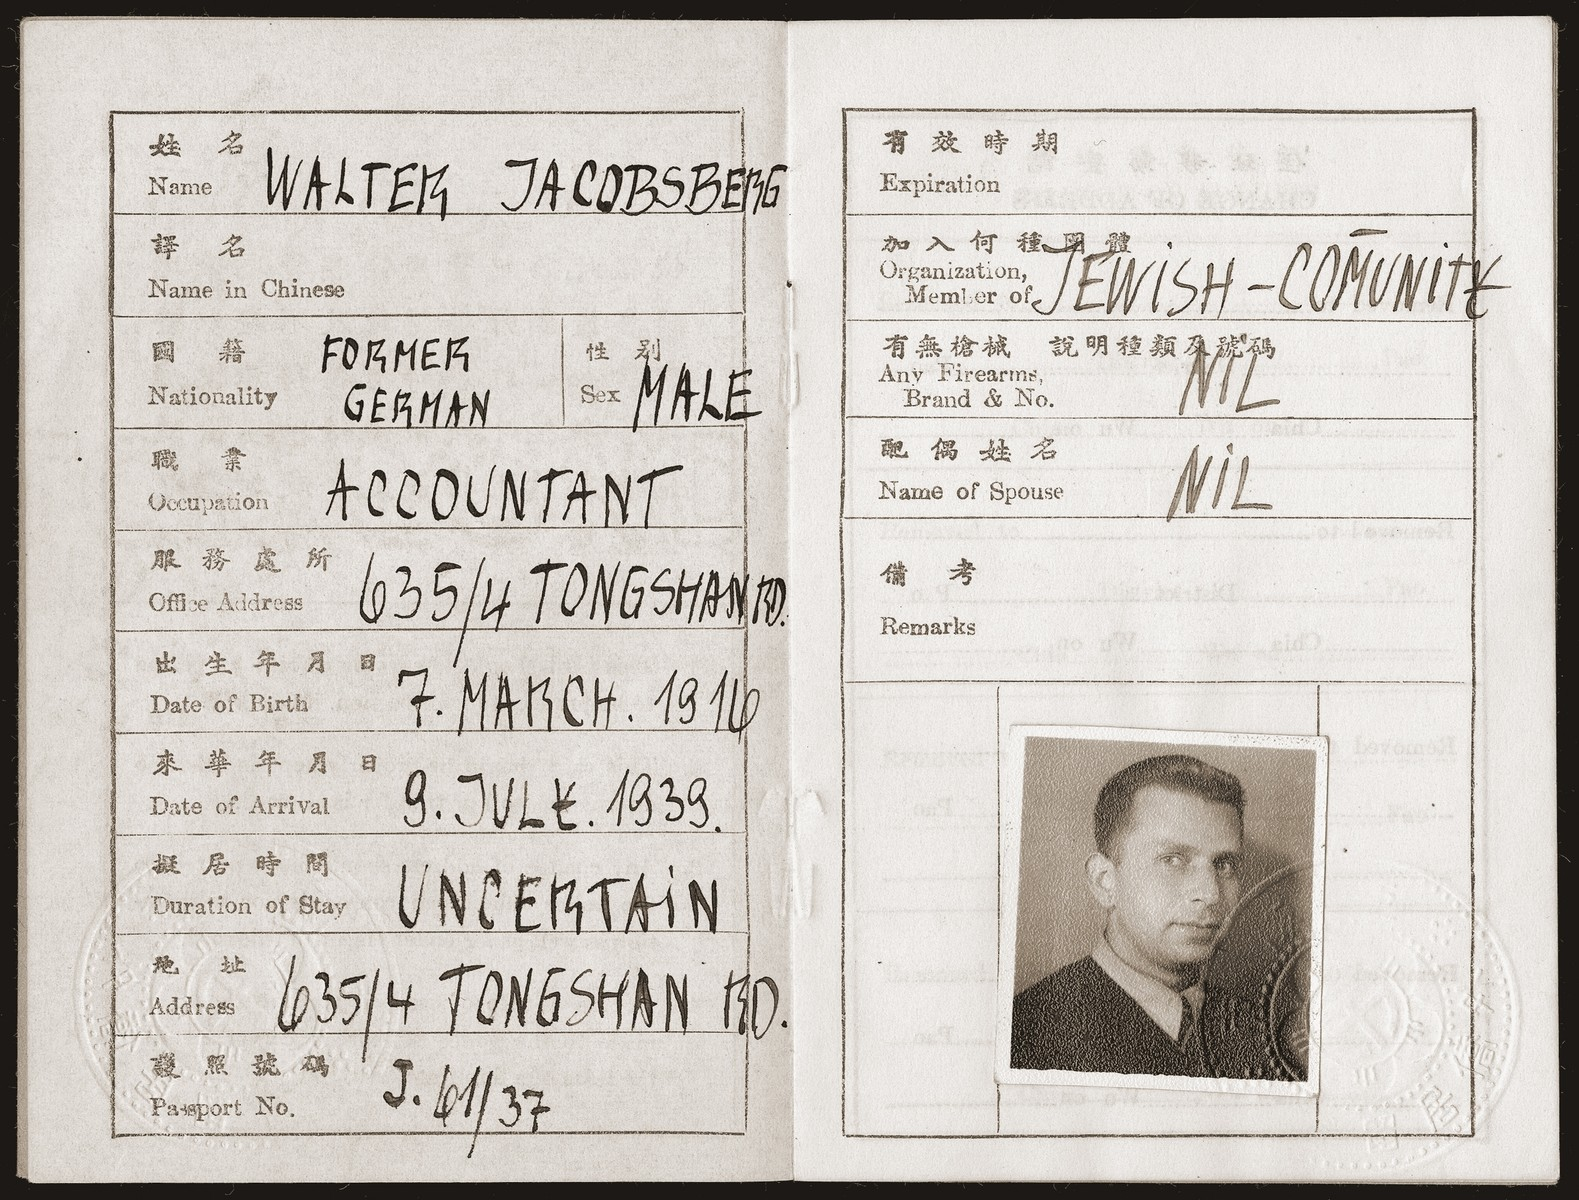 An identification document issued to Walter Jacobsberg in Shanghai.